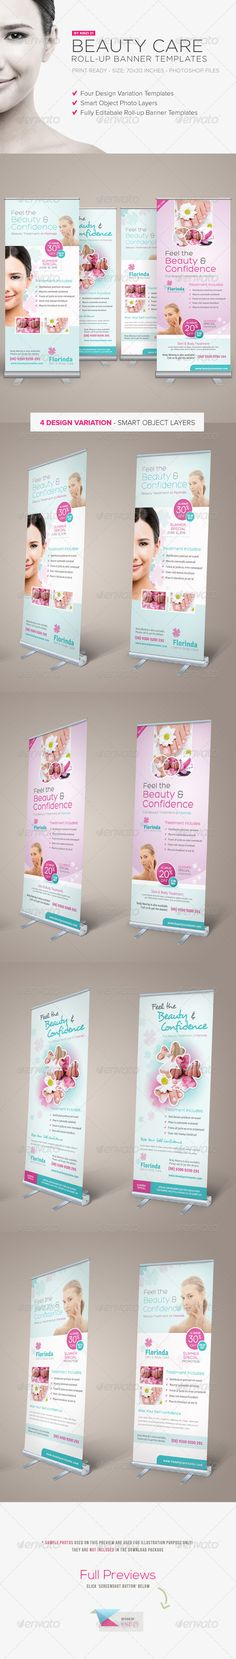 Beauty Care Roll-up Banners are design templates created for sale on Graphic River. More info of the templates and how to get the sourcefiles can be found on this page: http://graphicriver.net/item/beauty-care-rollup-banners/6301344?r=kinzi21